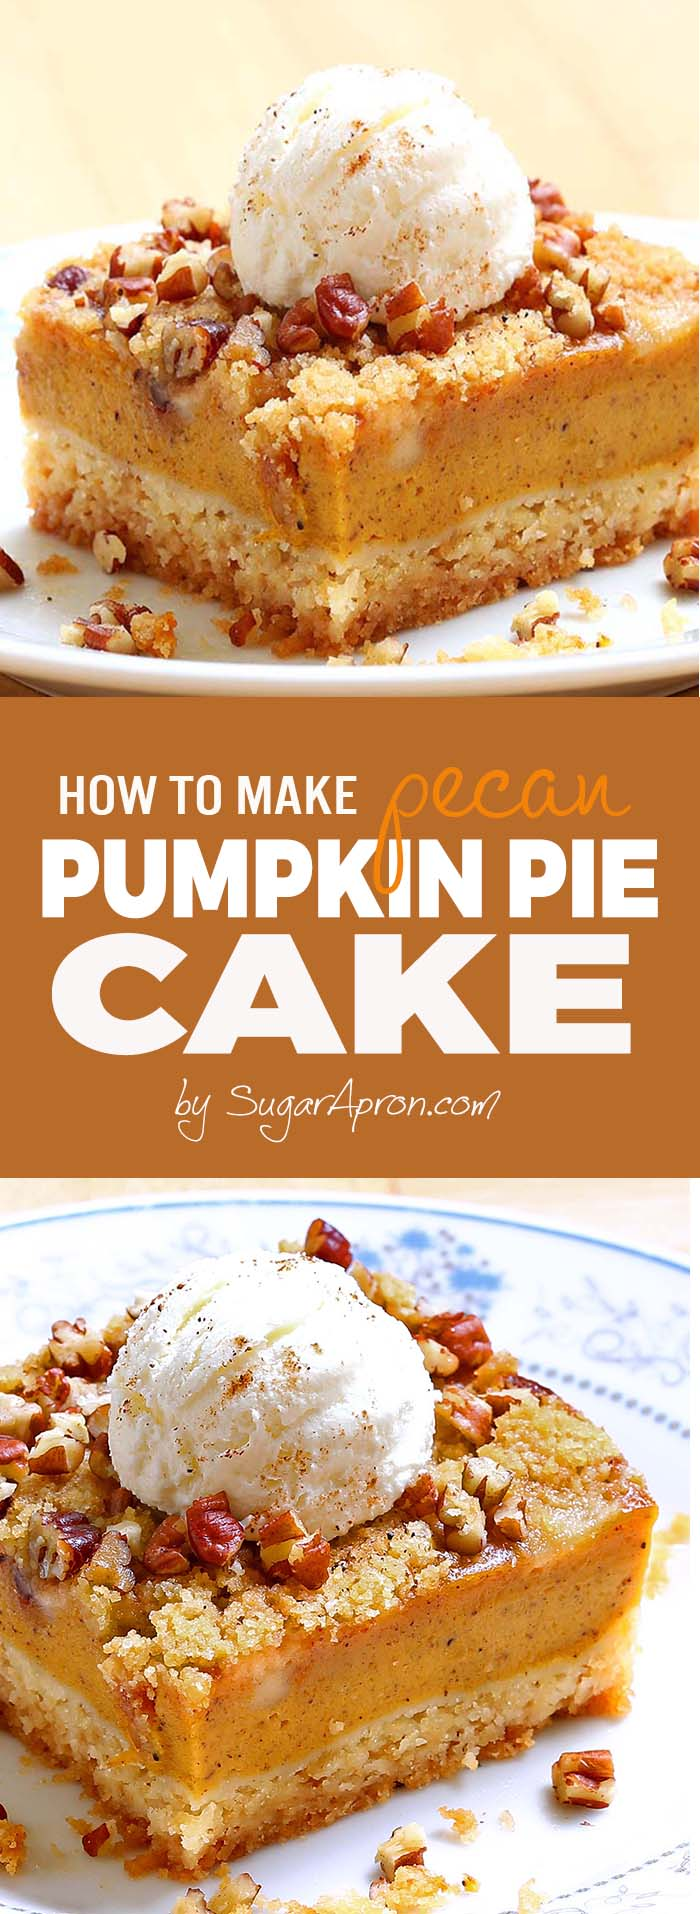 Pumpkin pie cake will be your new favorite pumpkin recipe! All the yummy flavors of a pumpkin pie but the heartiness of a cake.